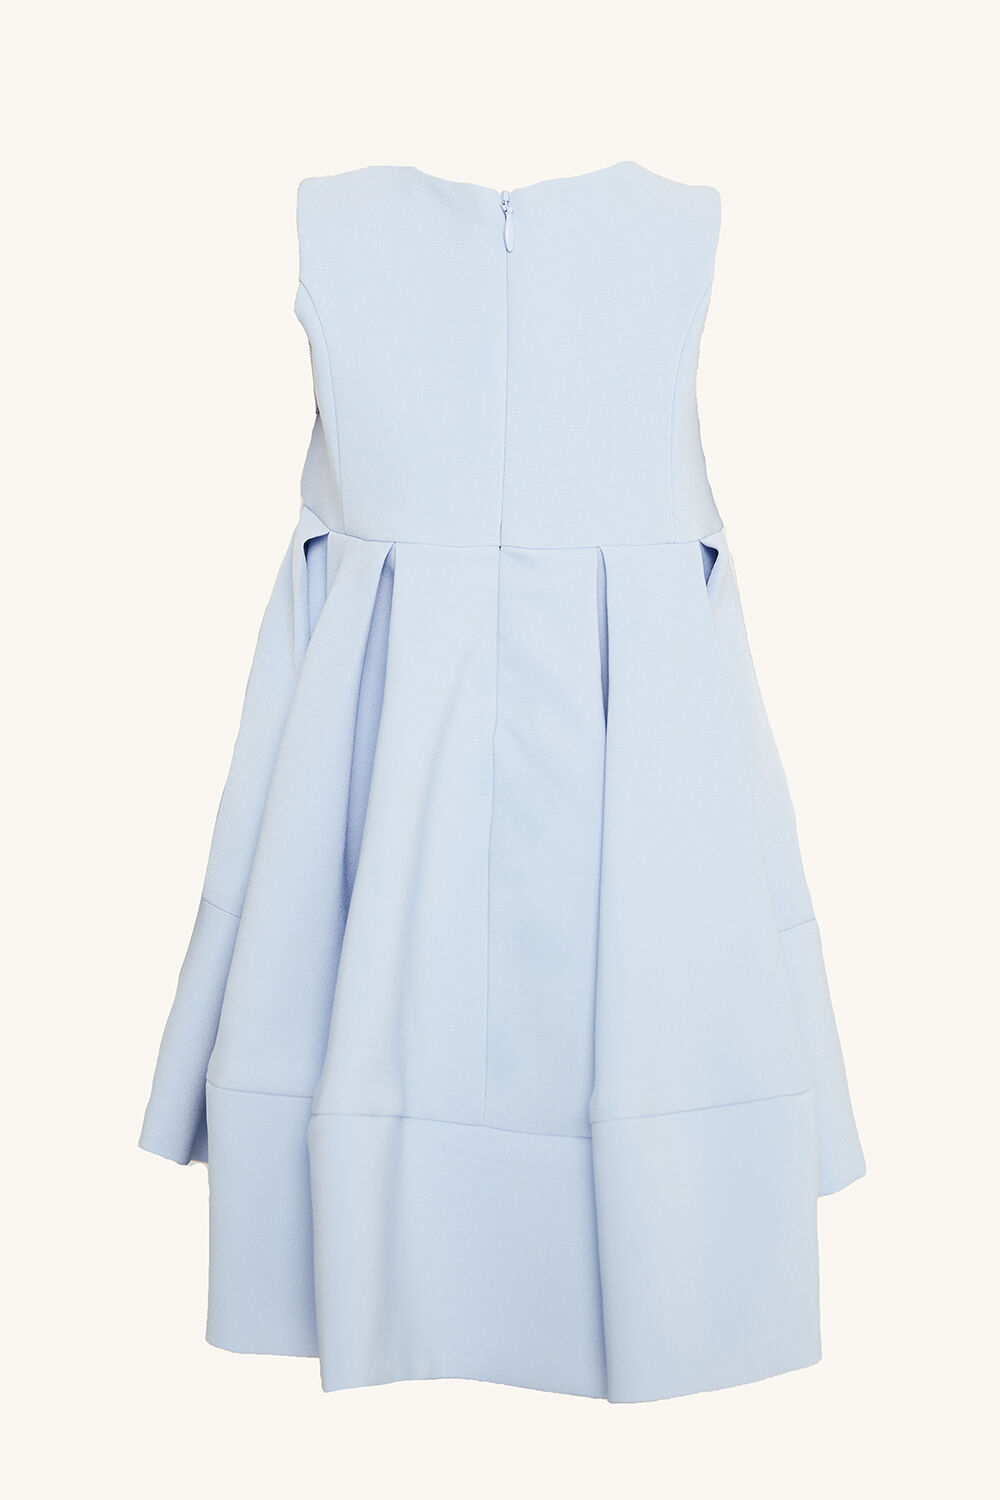 BABY GIRL GRACE STARLET DRESS in colour BALLAD BLUE